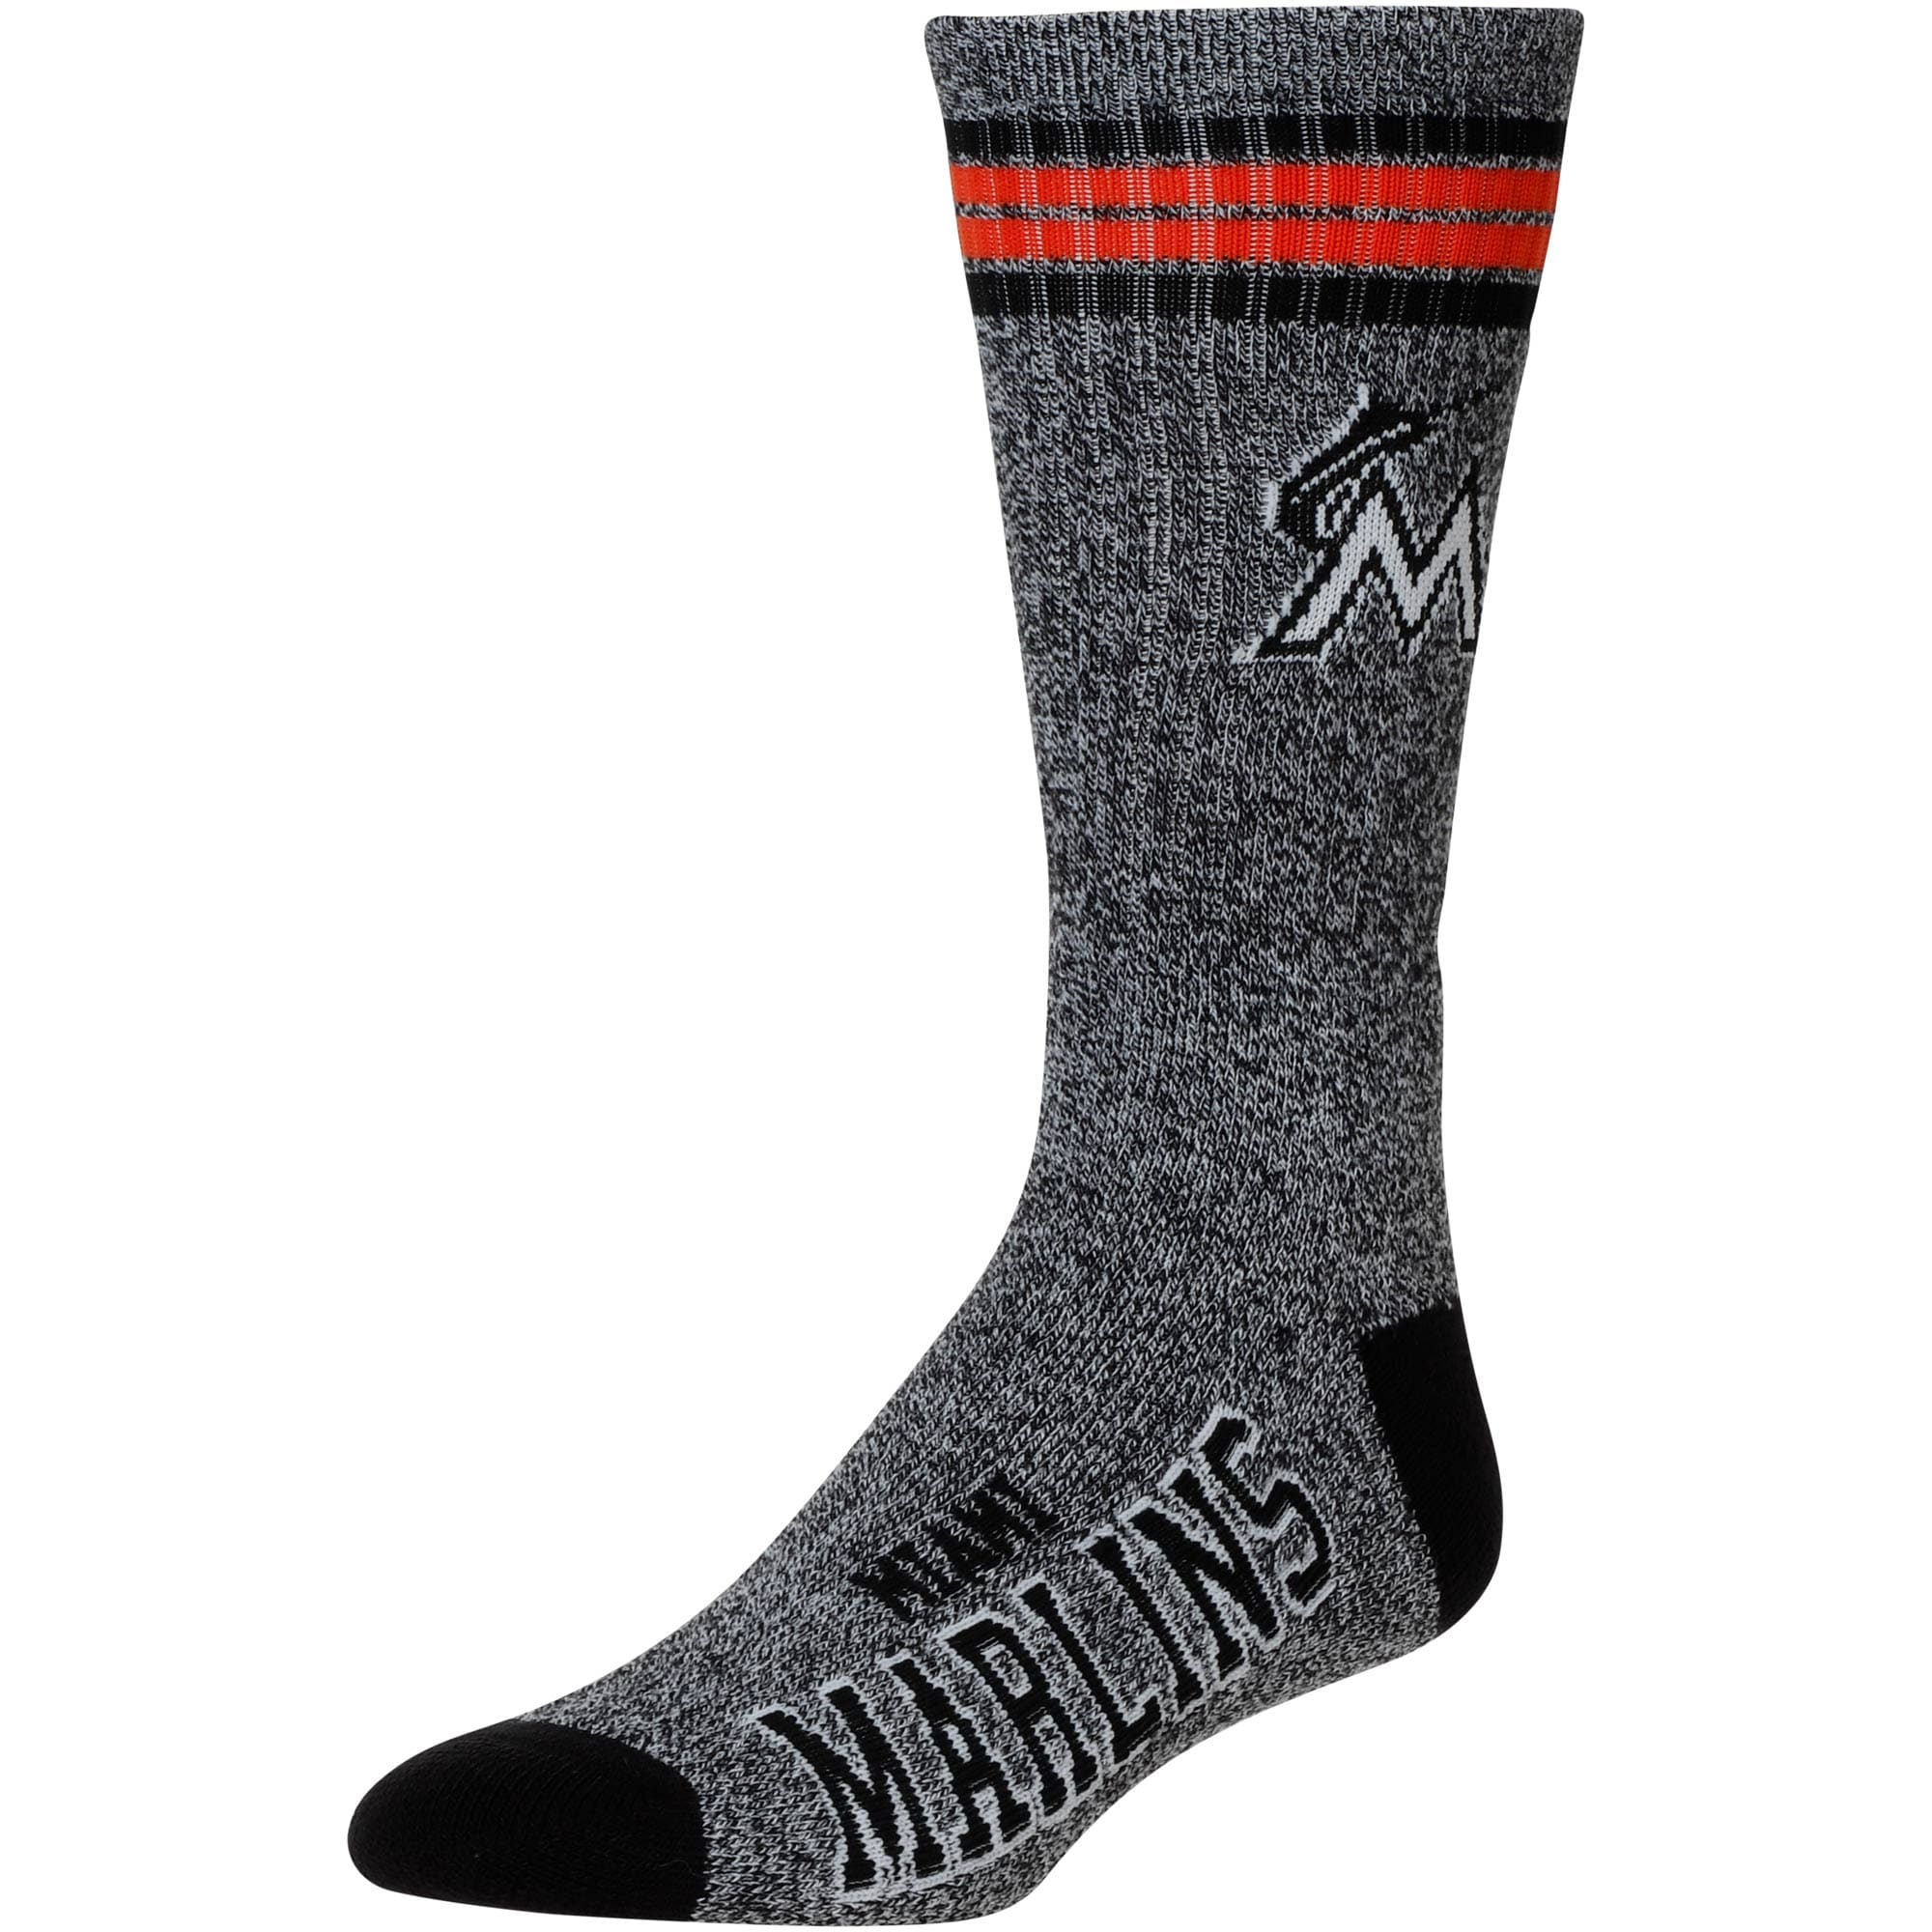 Miami Marlins For Bare Feet Got Marble Crew Socks - Gray